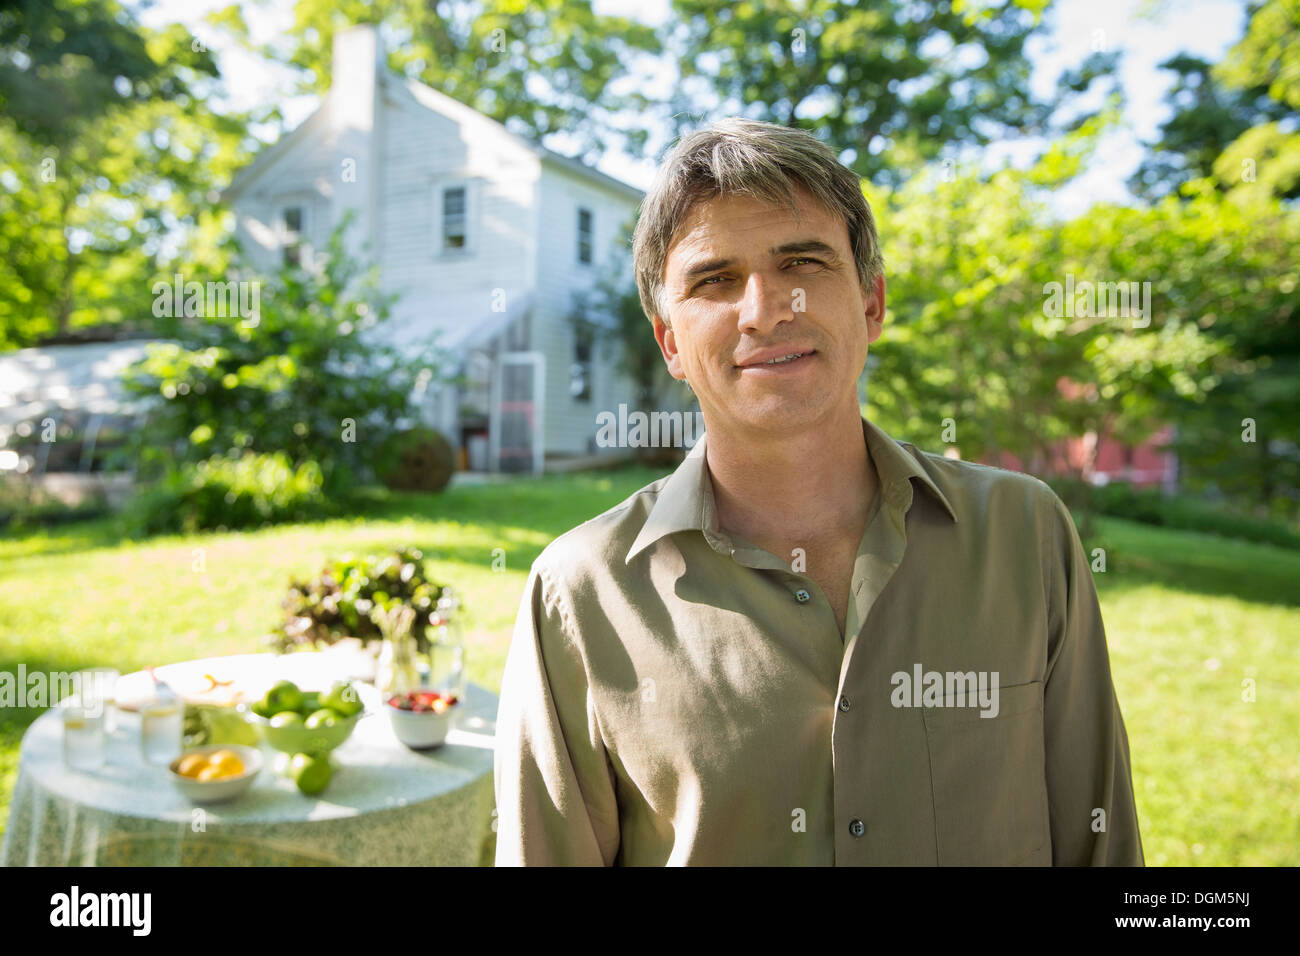 On the farm. A man in a farmhouse garden, beside a round table with fresh lemonade drinks. - Stock Image